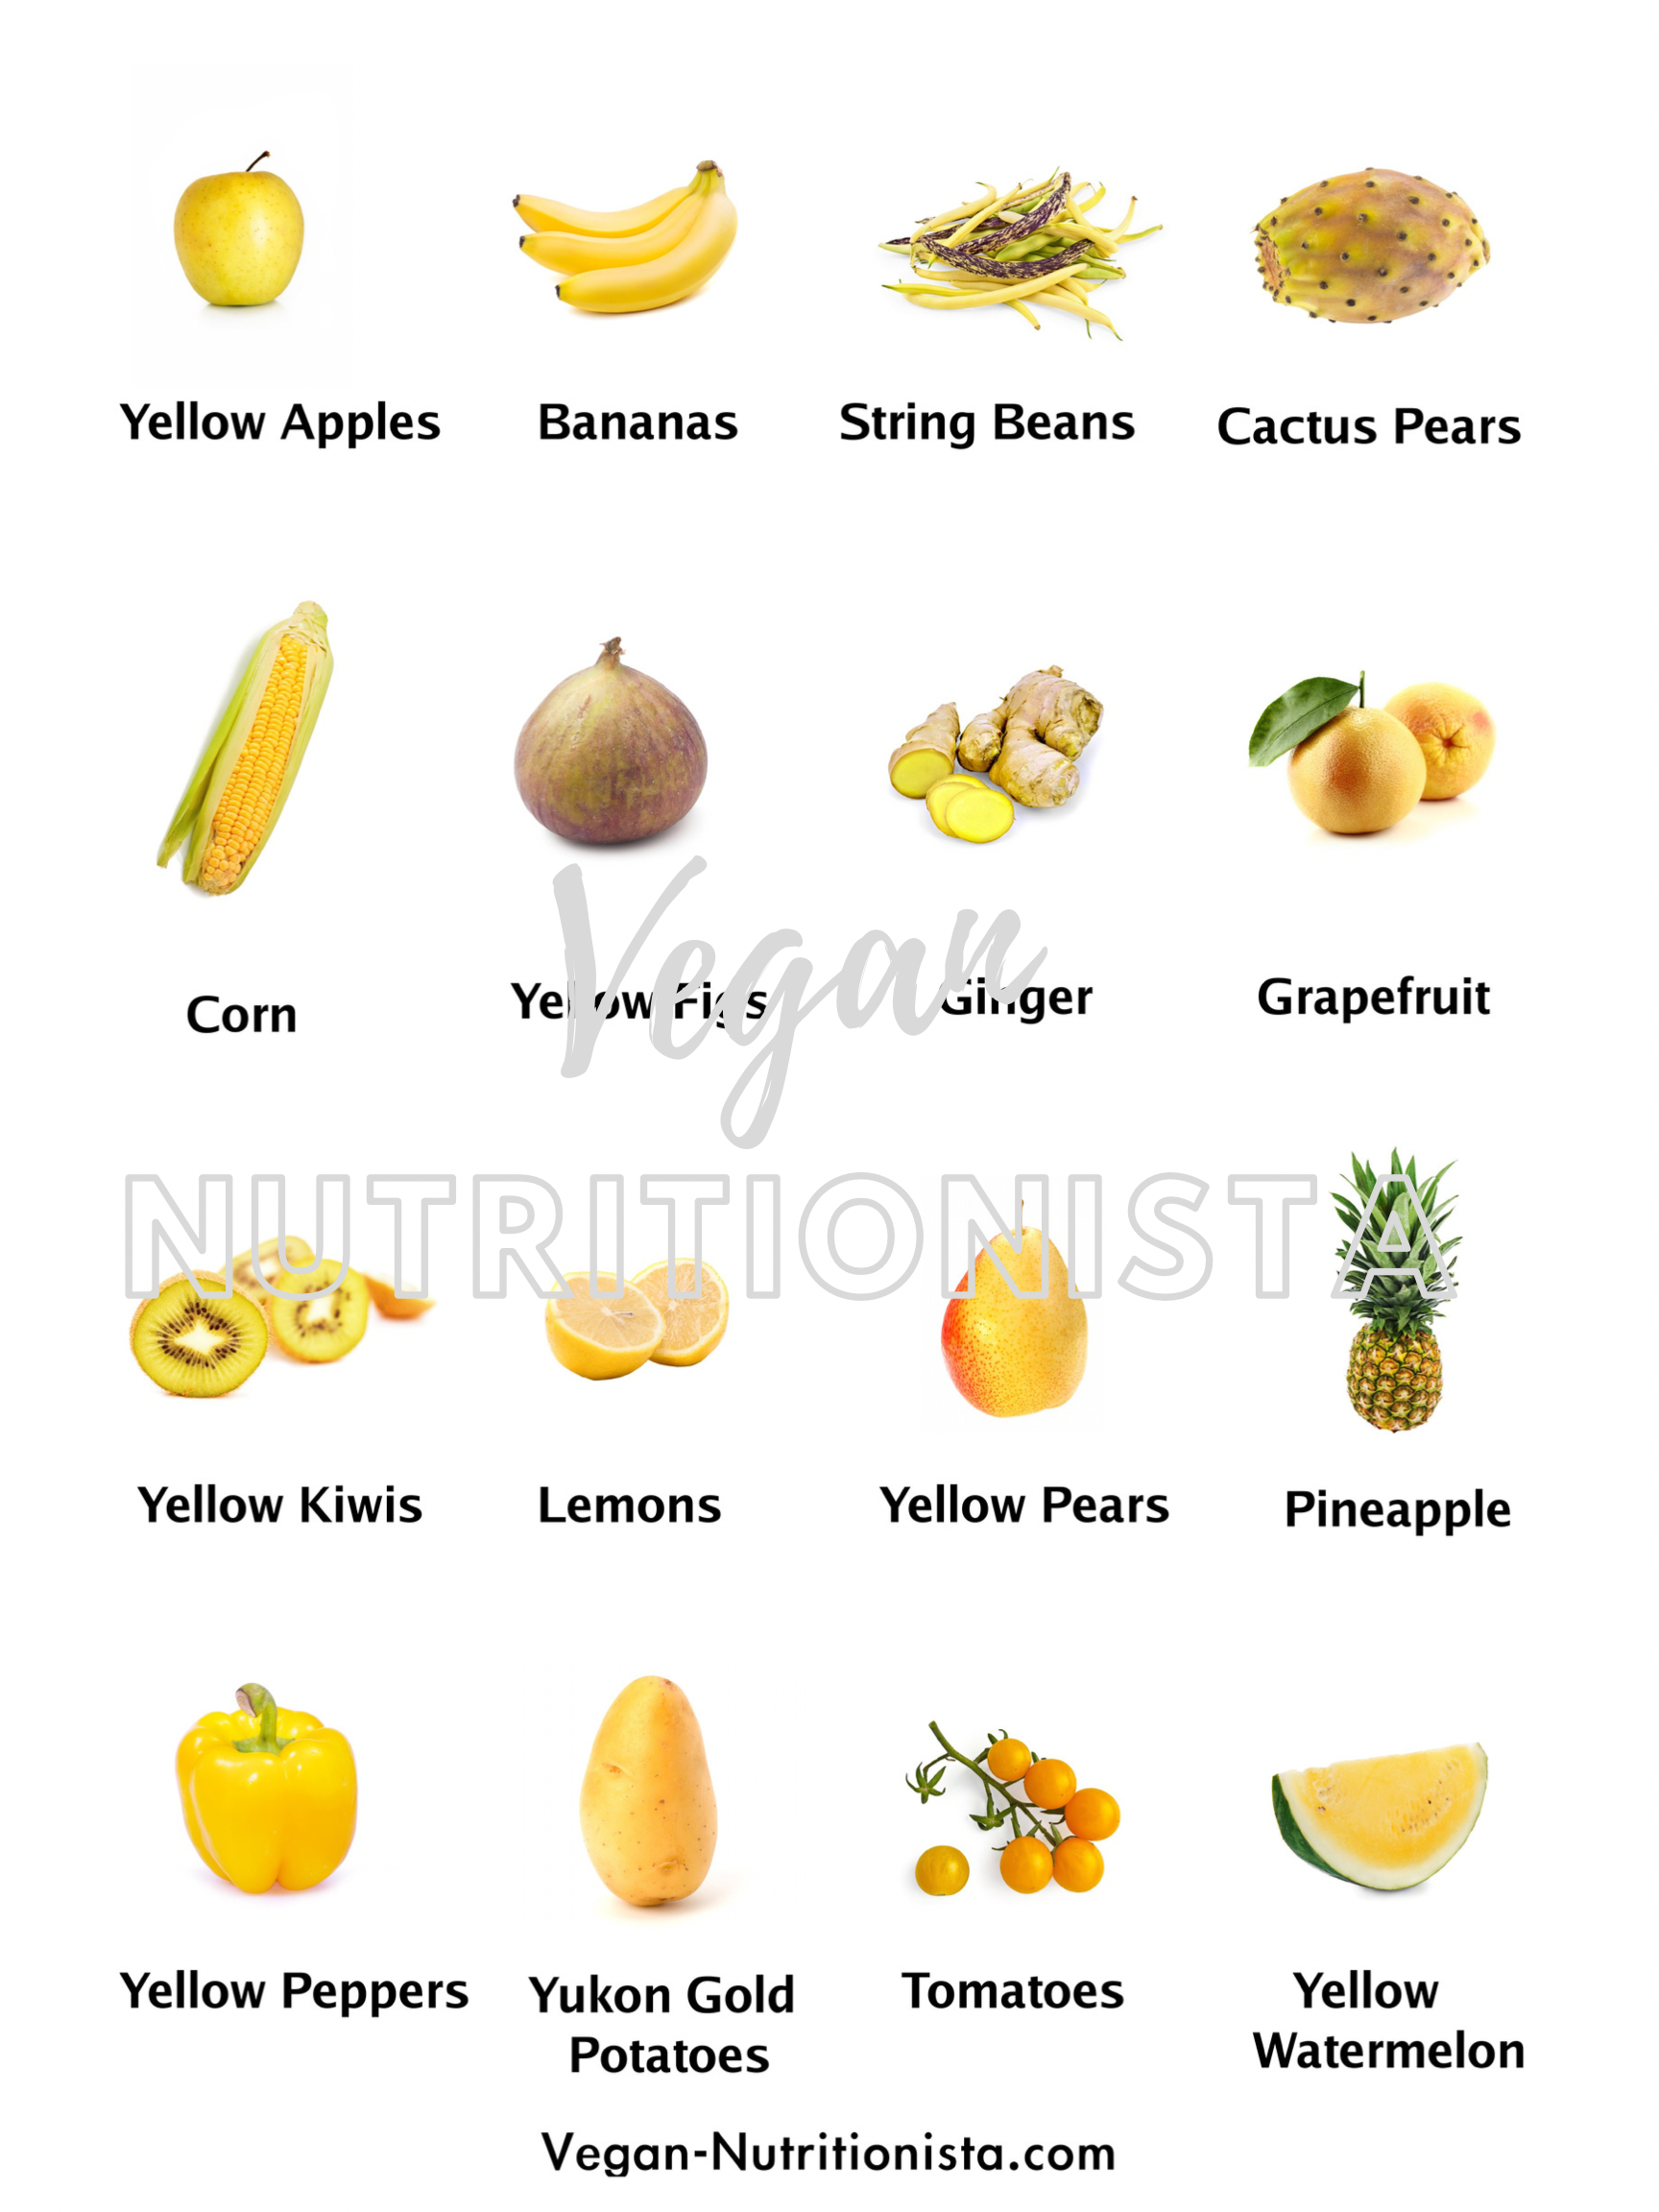 A picture showing the yellow fruits and vegetables